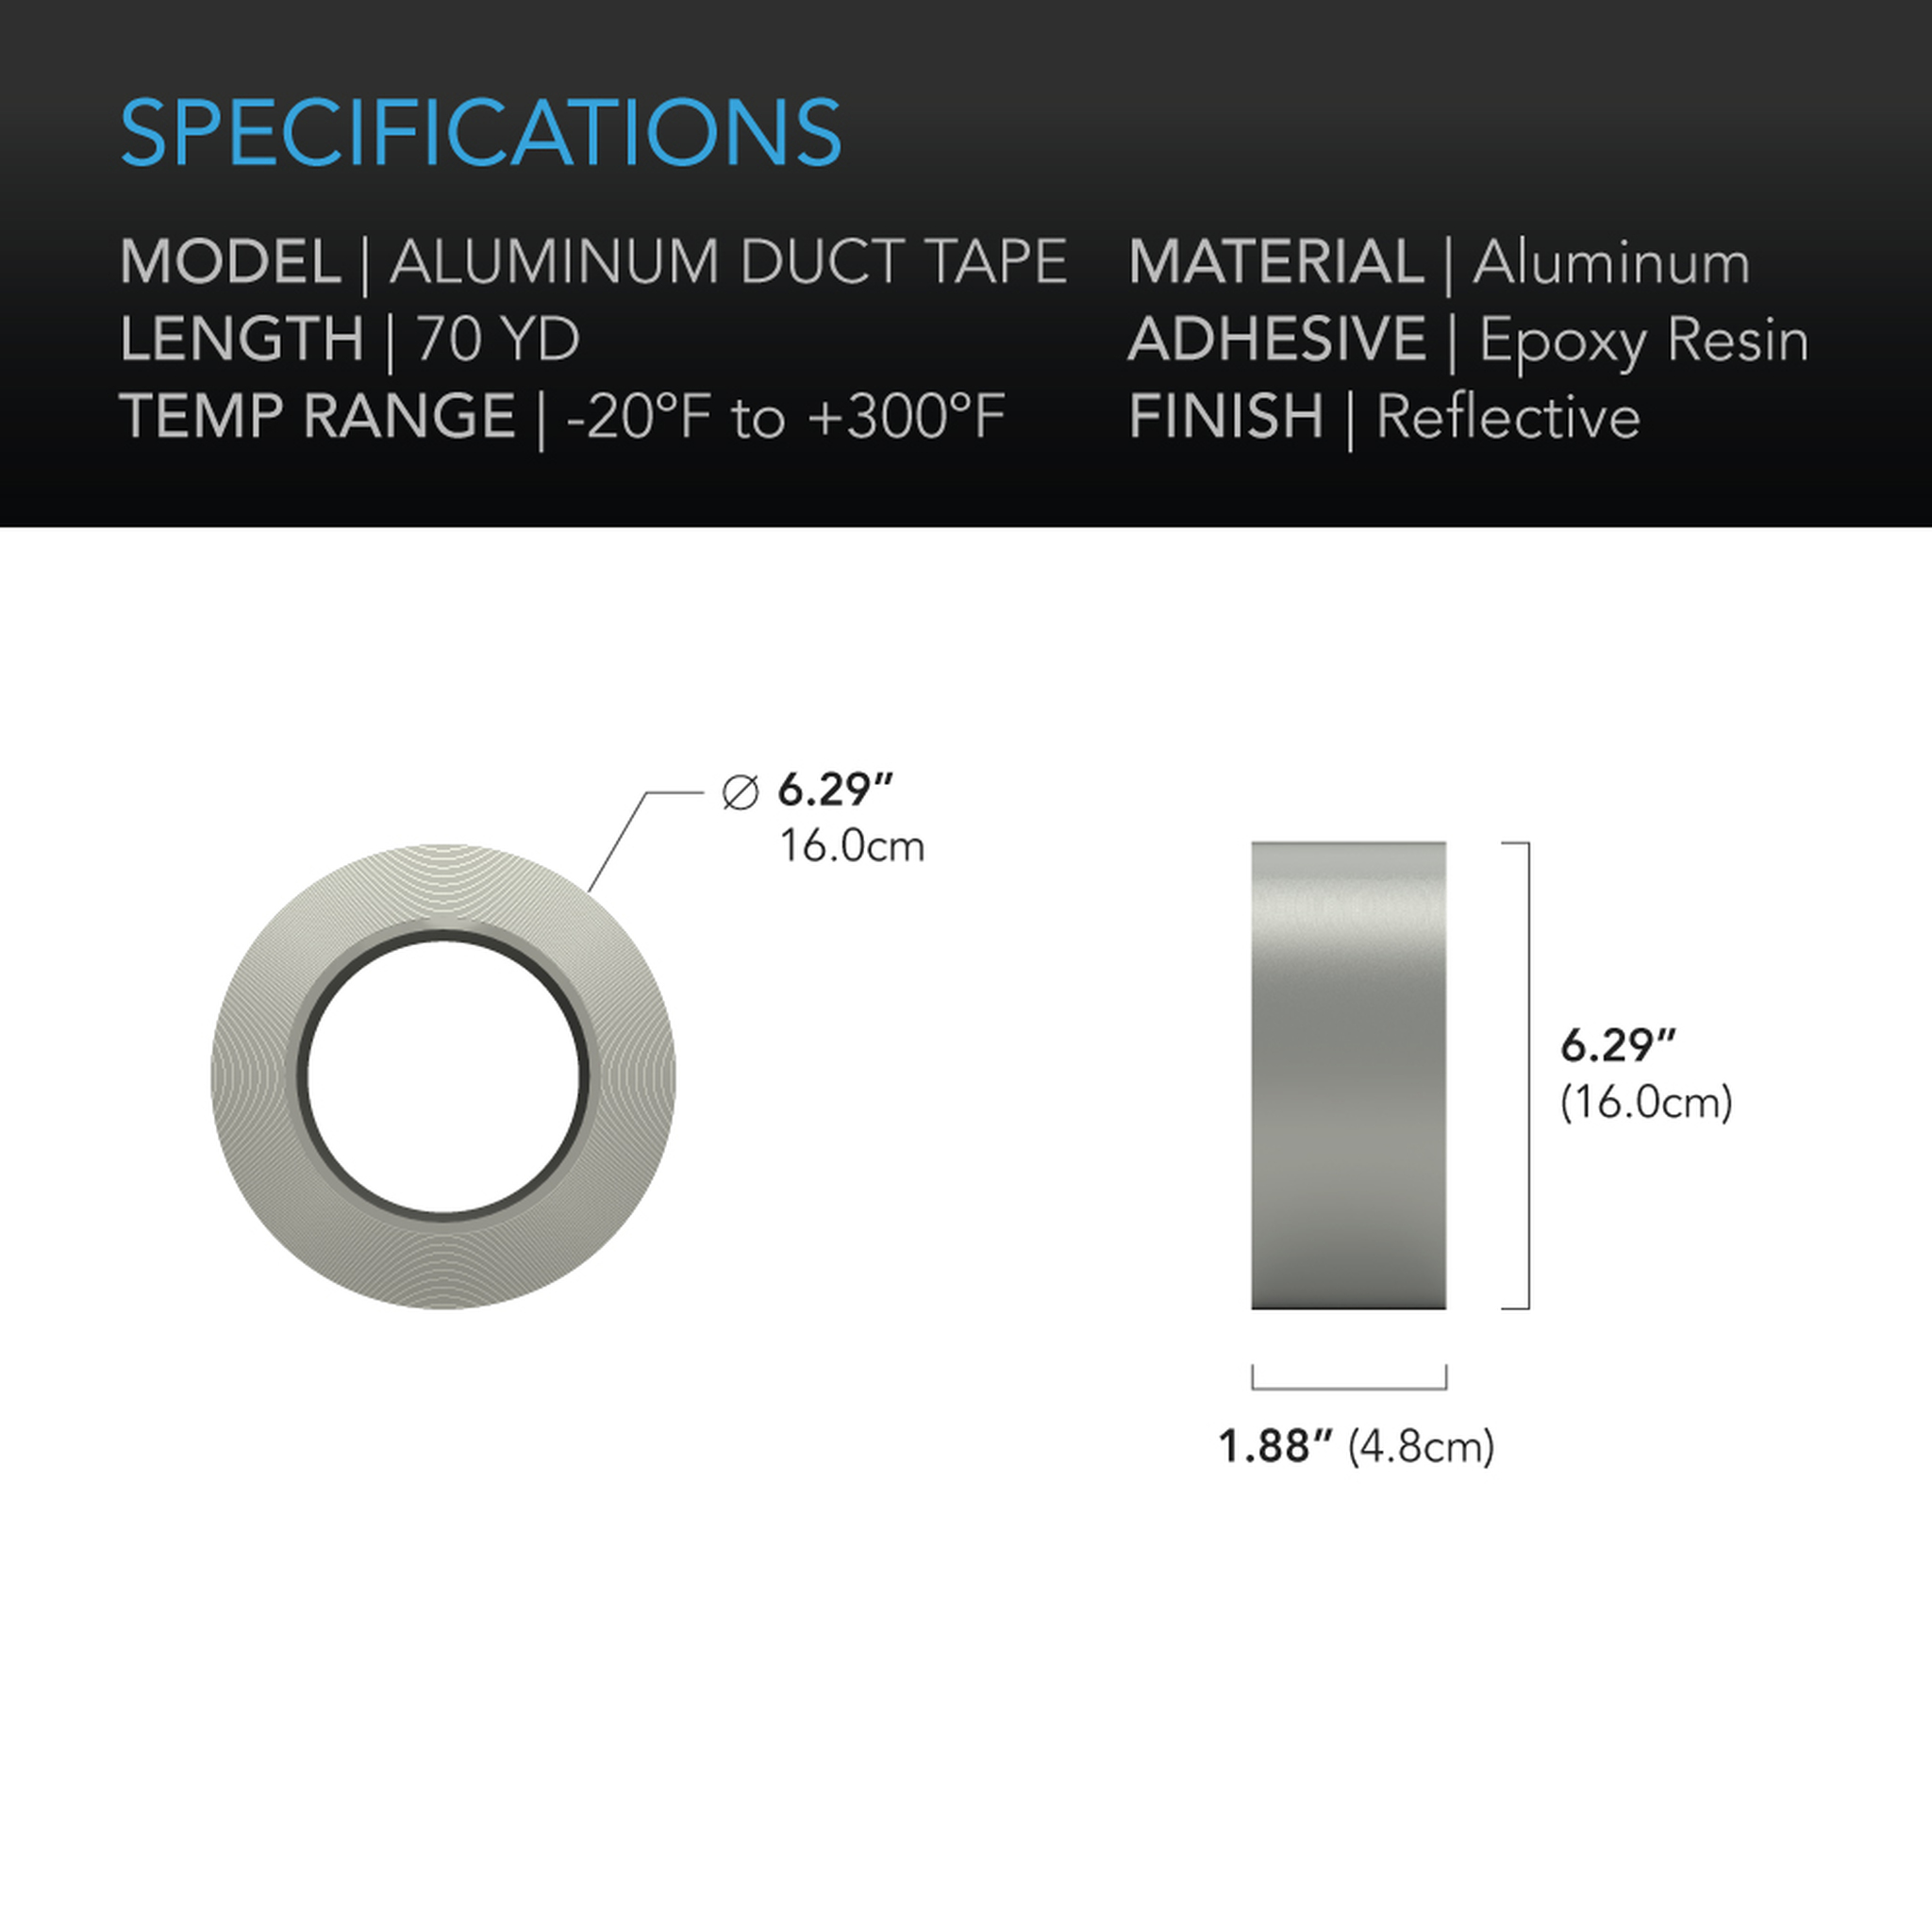 AC Infinity Aluminum Duct tape 70-yard specifications